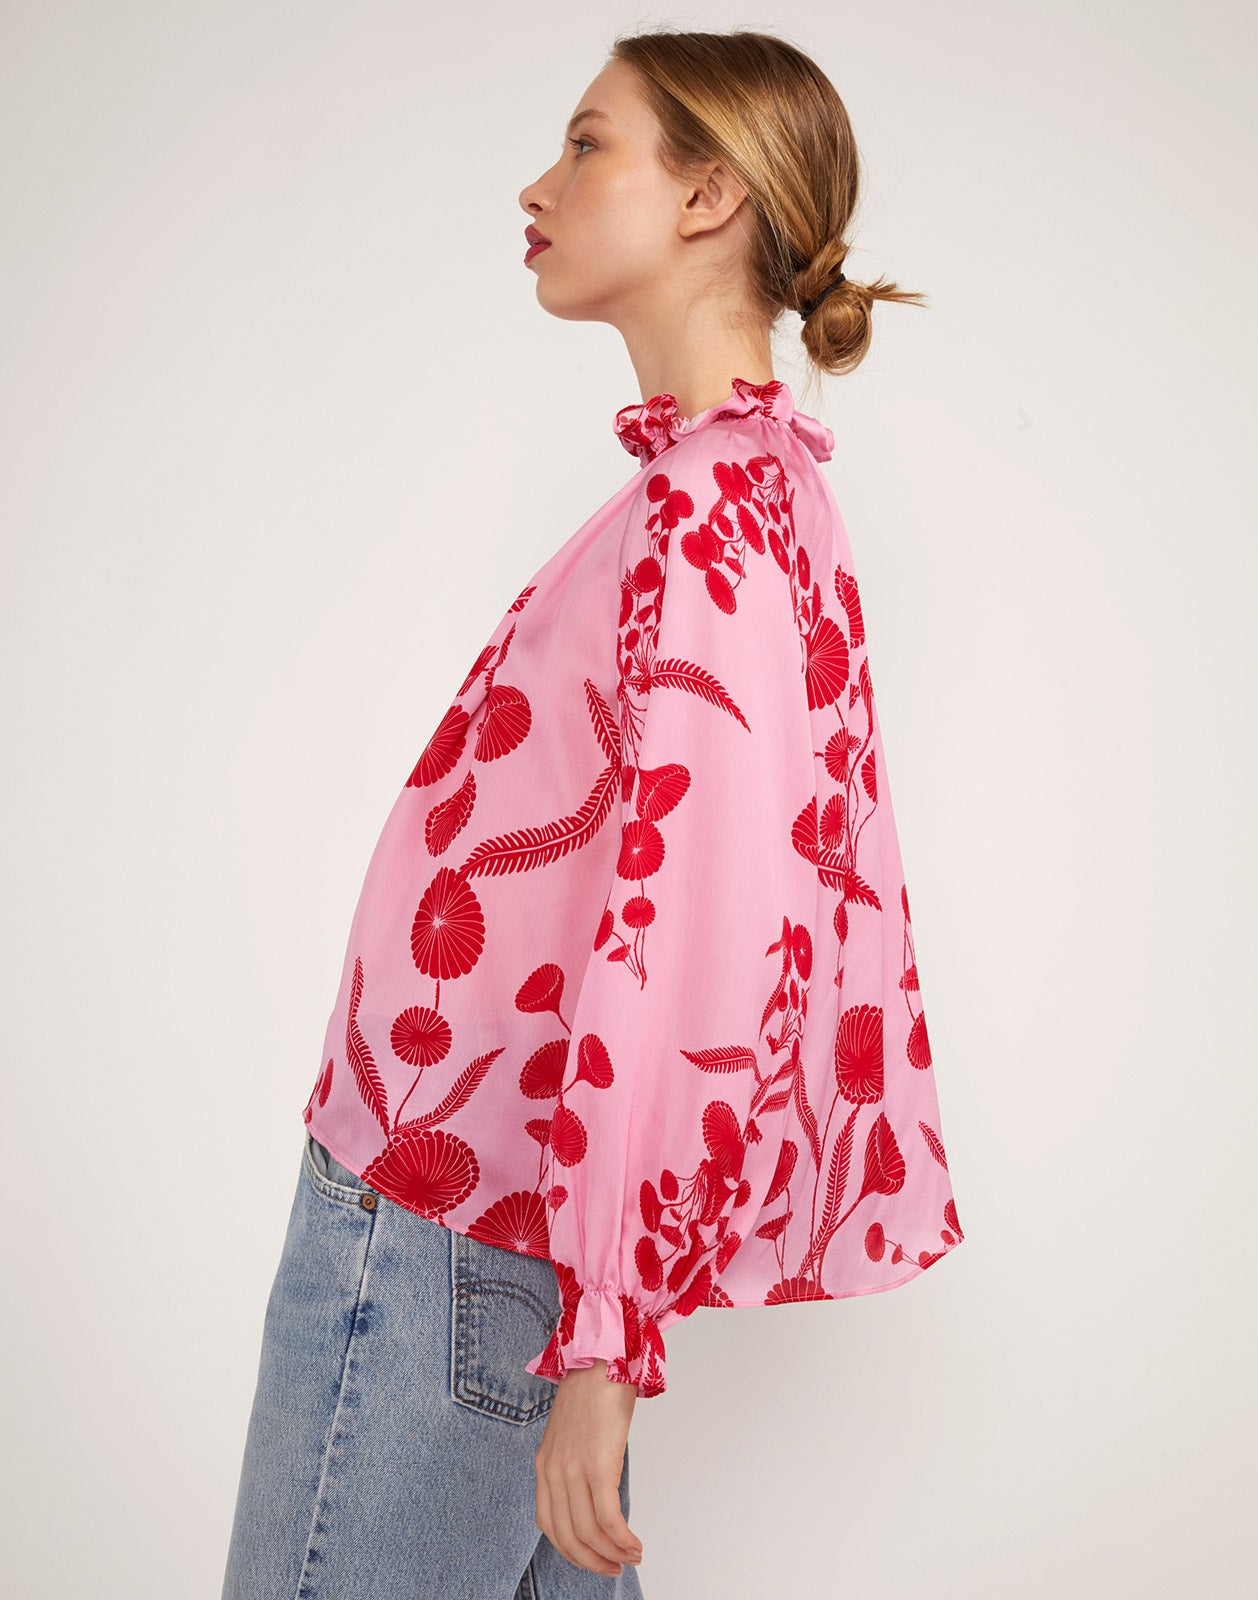 Full close up side view of model wearing Poppy Smocked Ruffle Top.